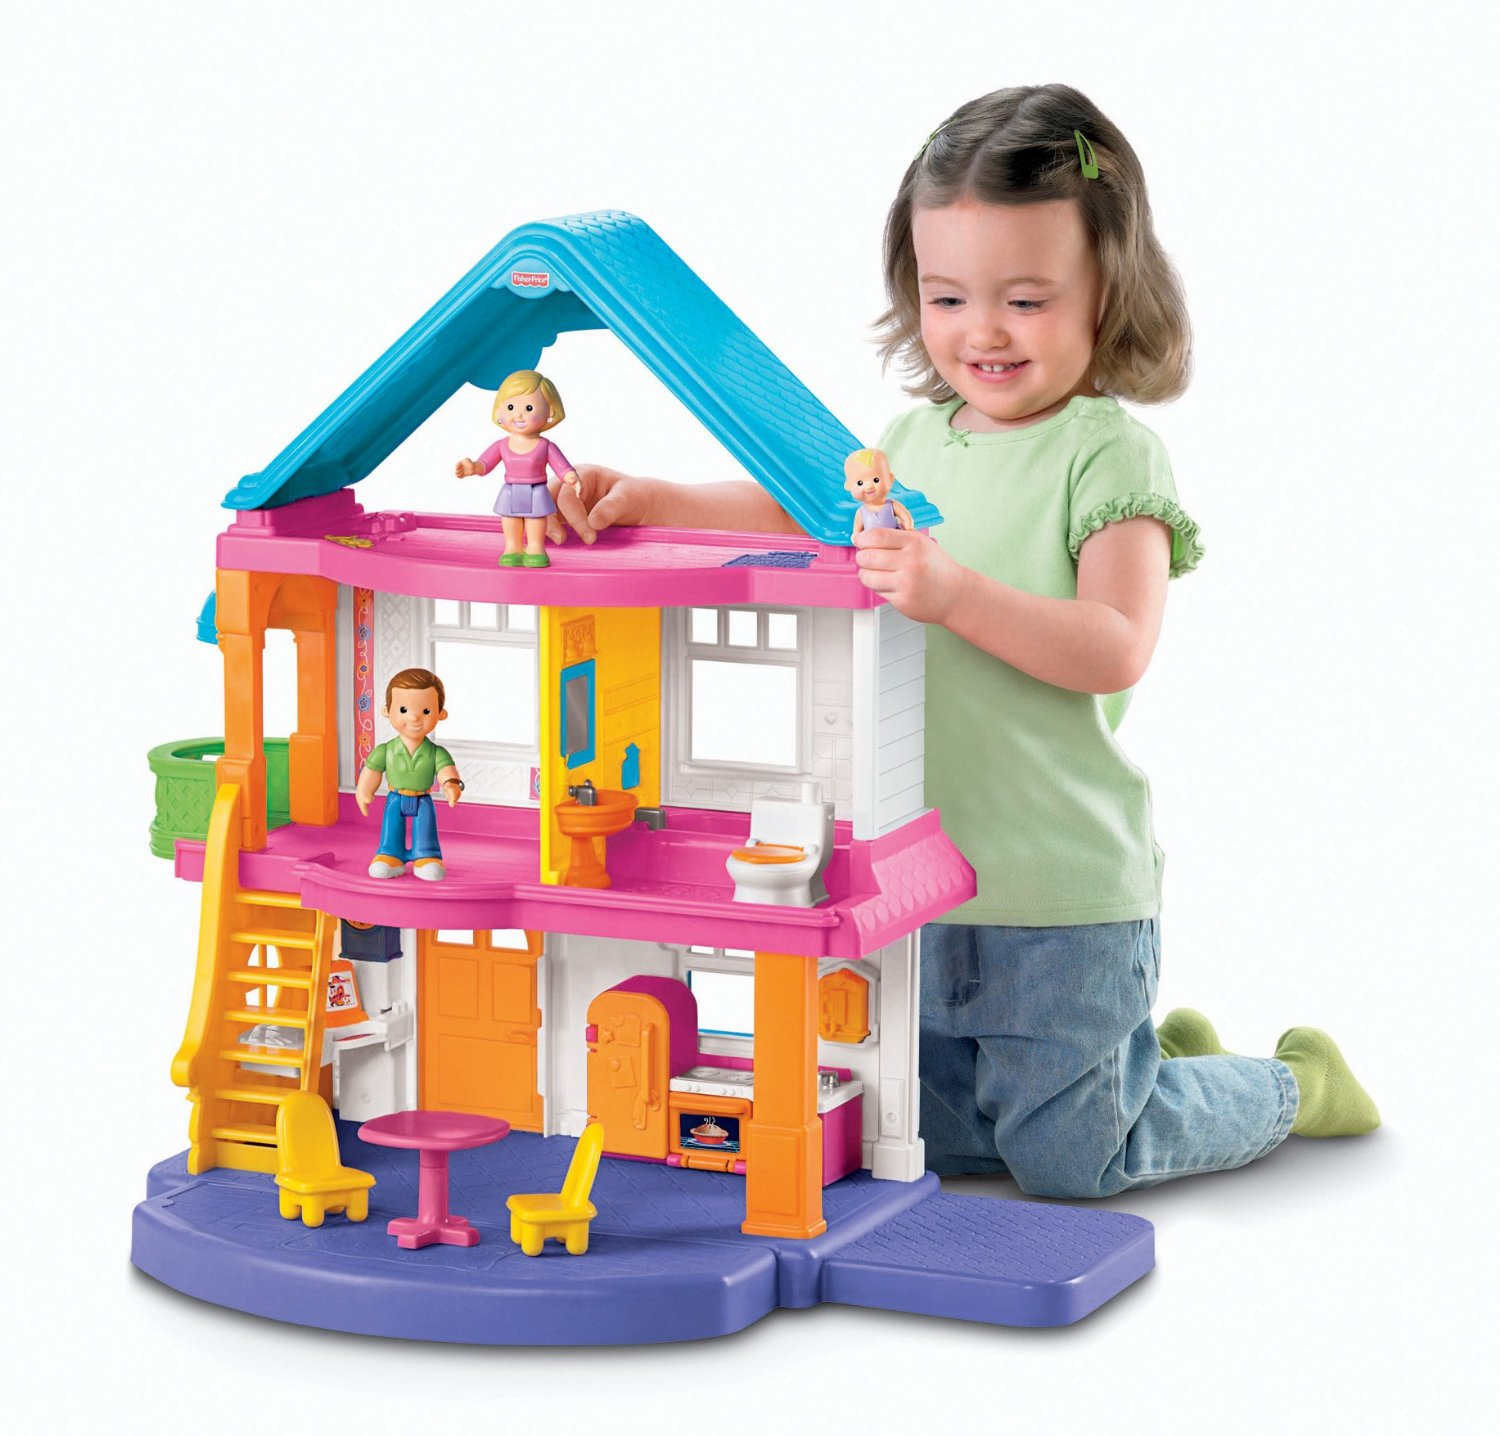 Toys For Girls Lol : Fisher price my first dollhouse review